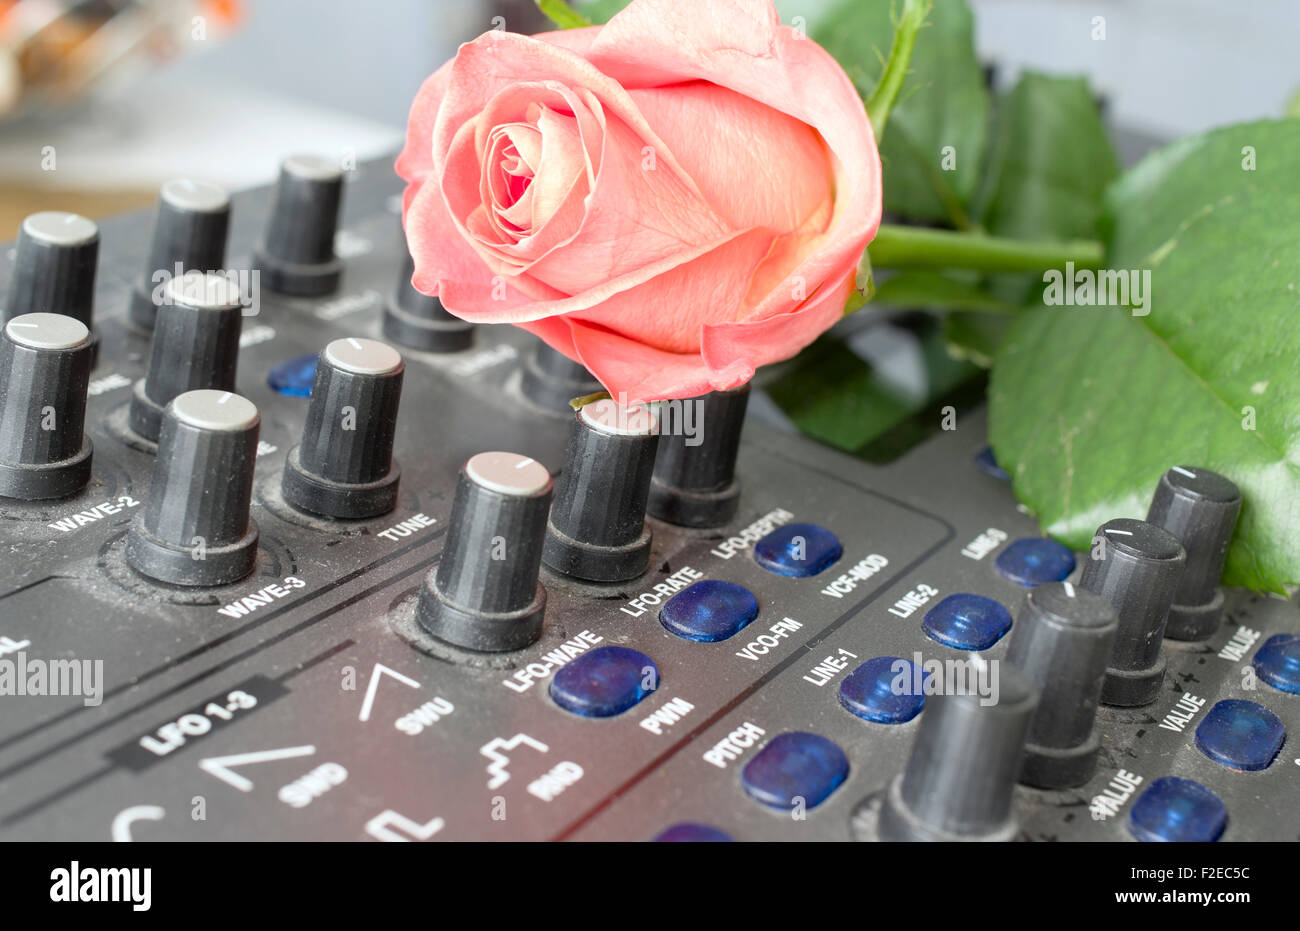 Red rose on the synthesizer - Stock Image